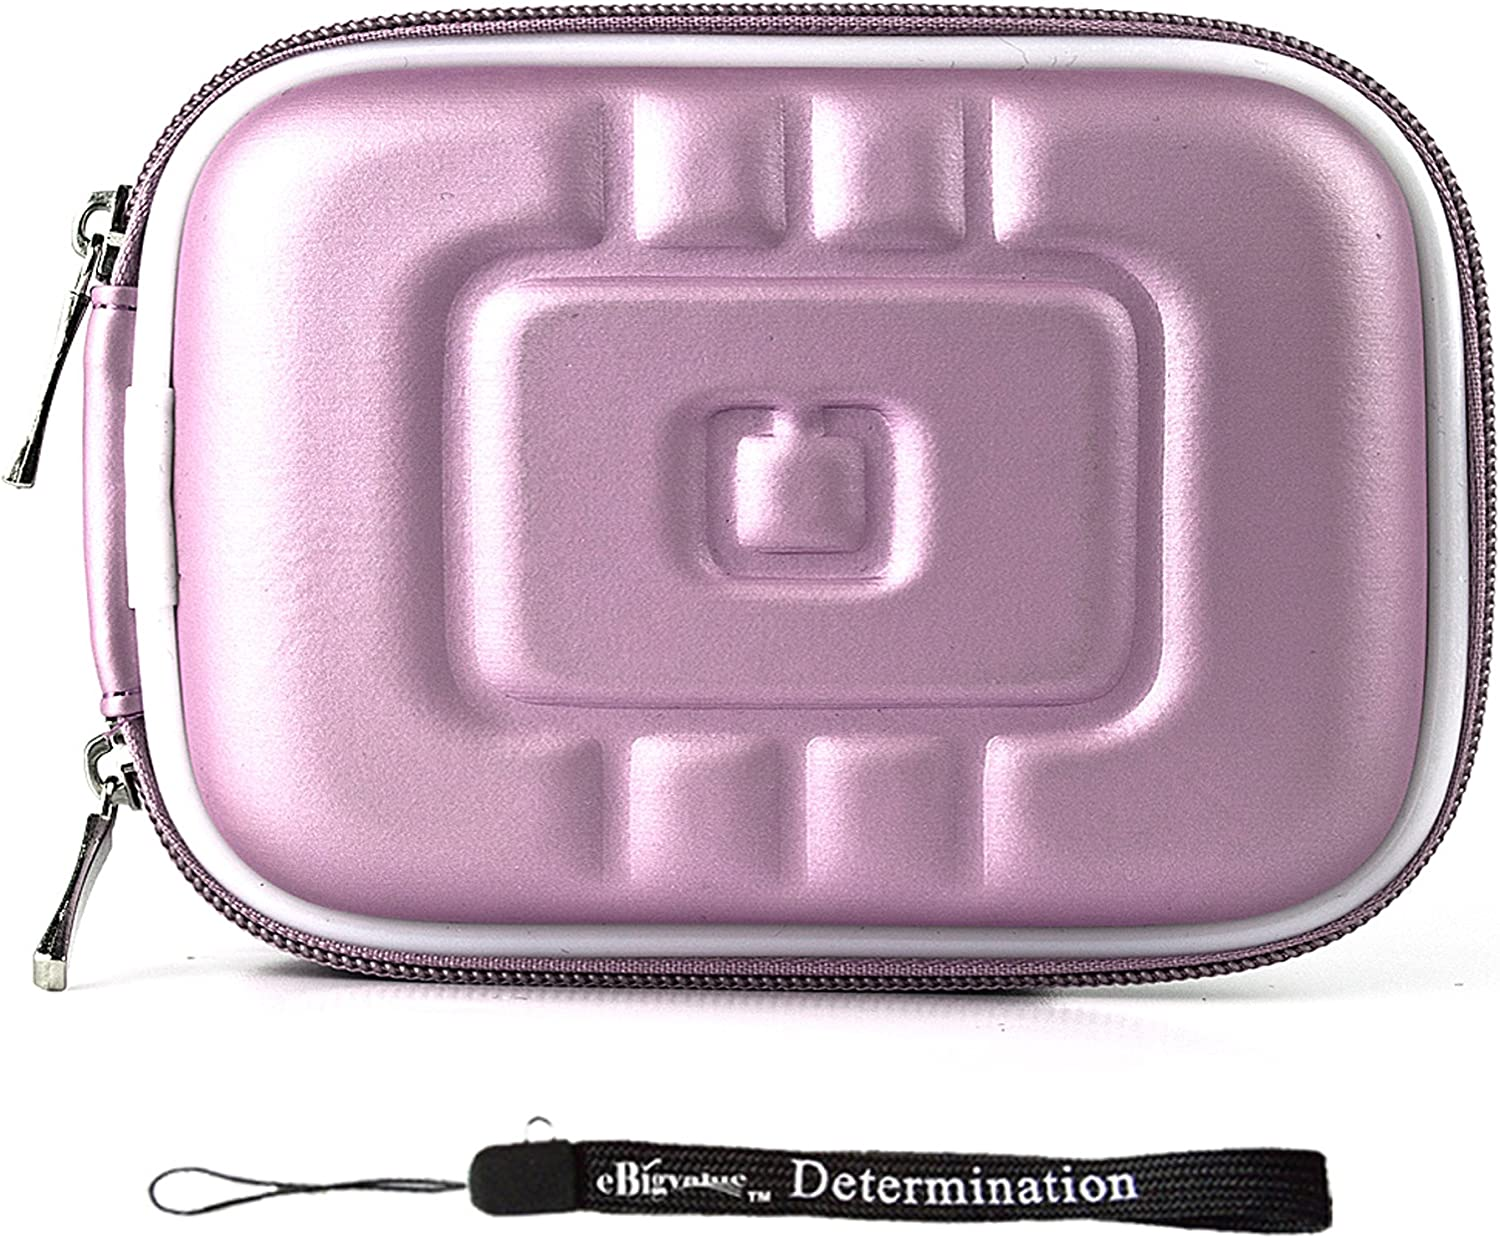 Purple Eva Durable Protective Cover Cube with Mesh Pocket for Compact Sizes Fitted for Hewlett Packard Compact Digital Cameras